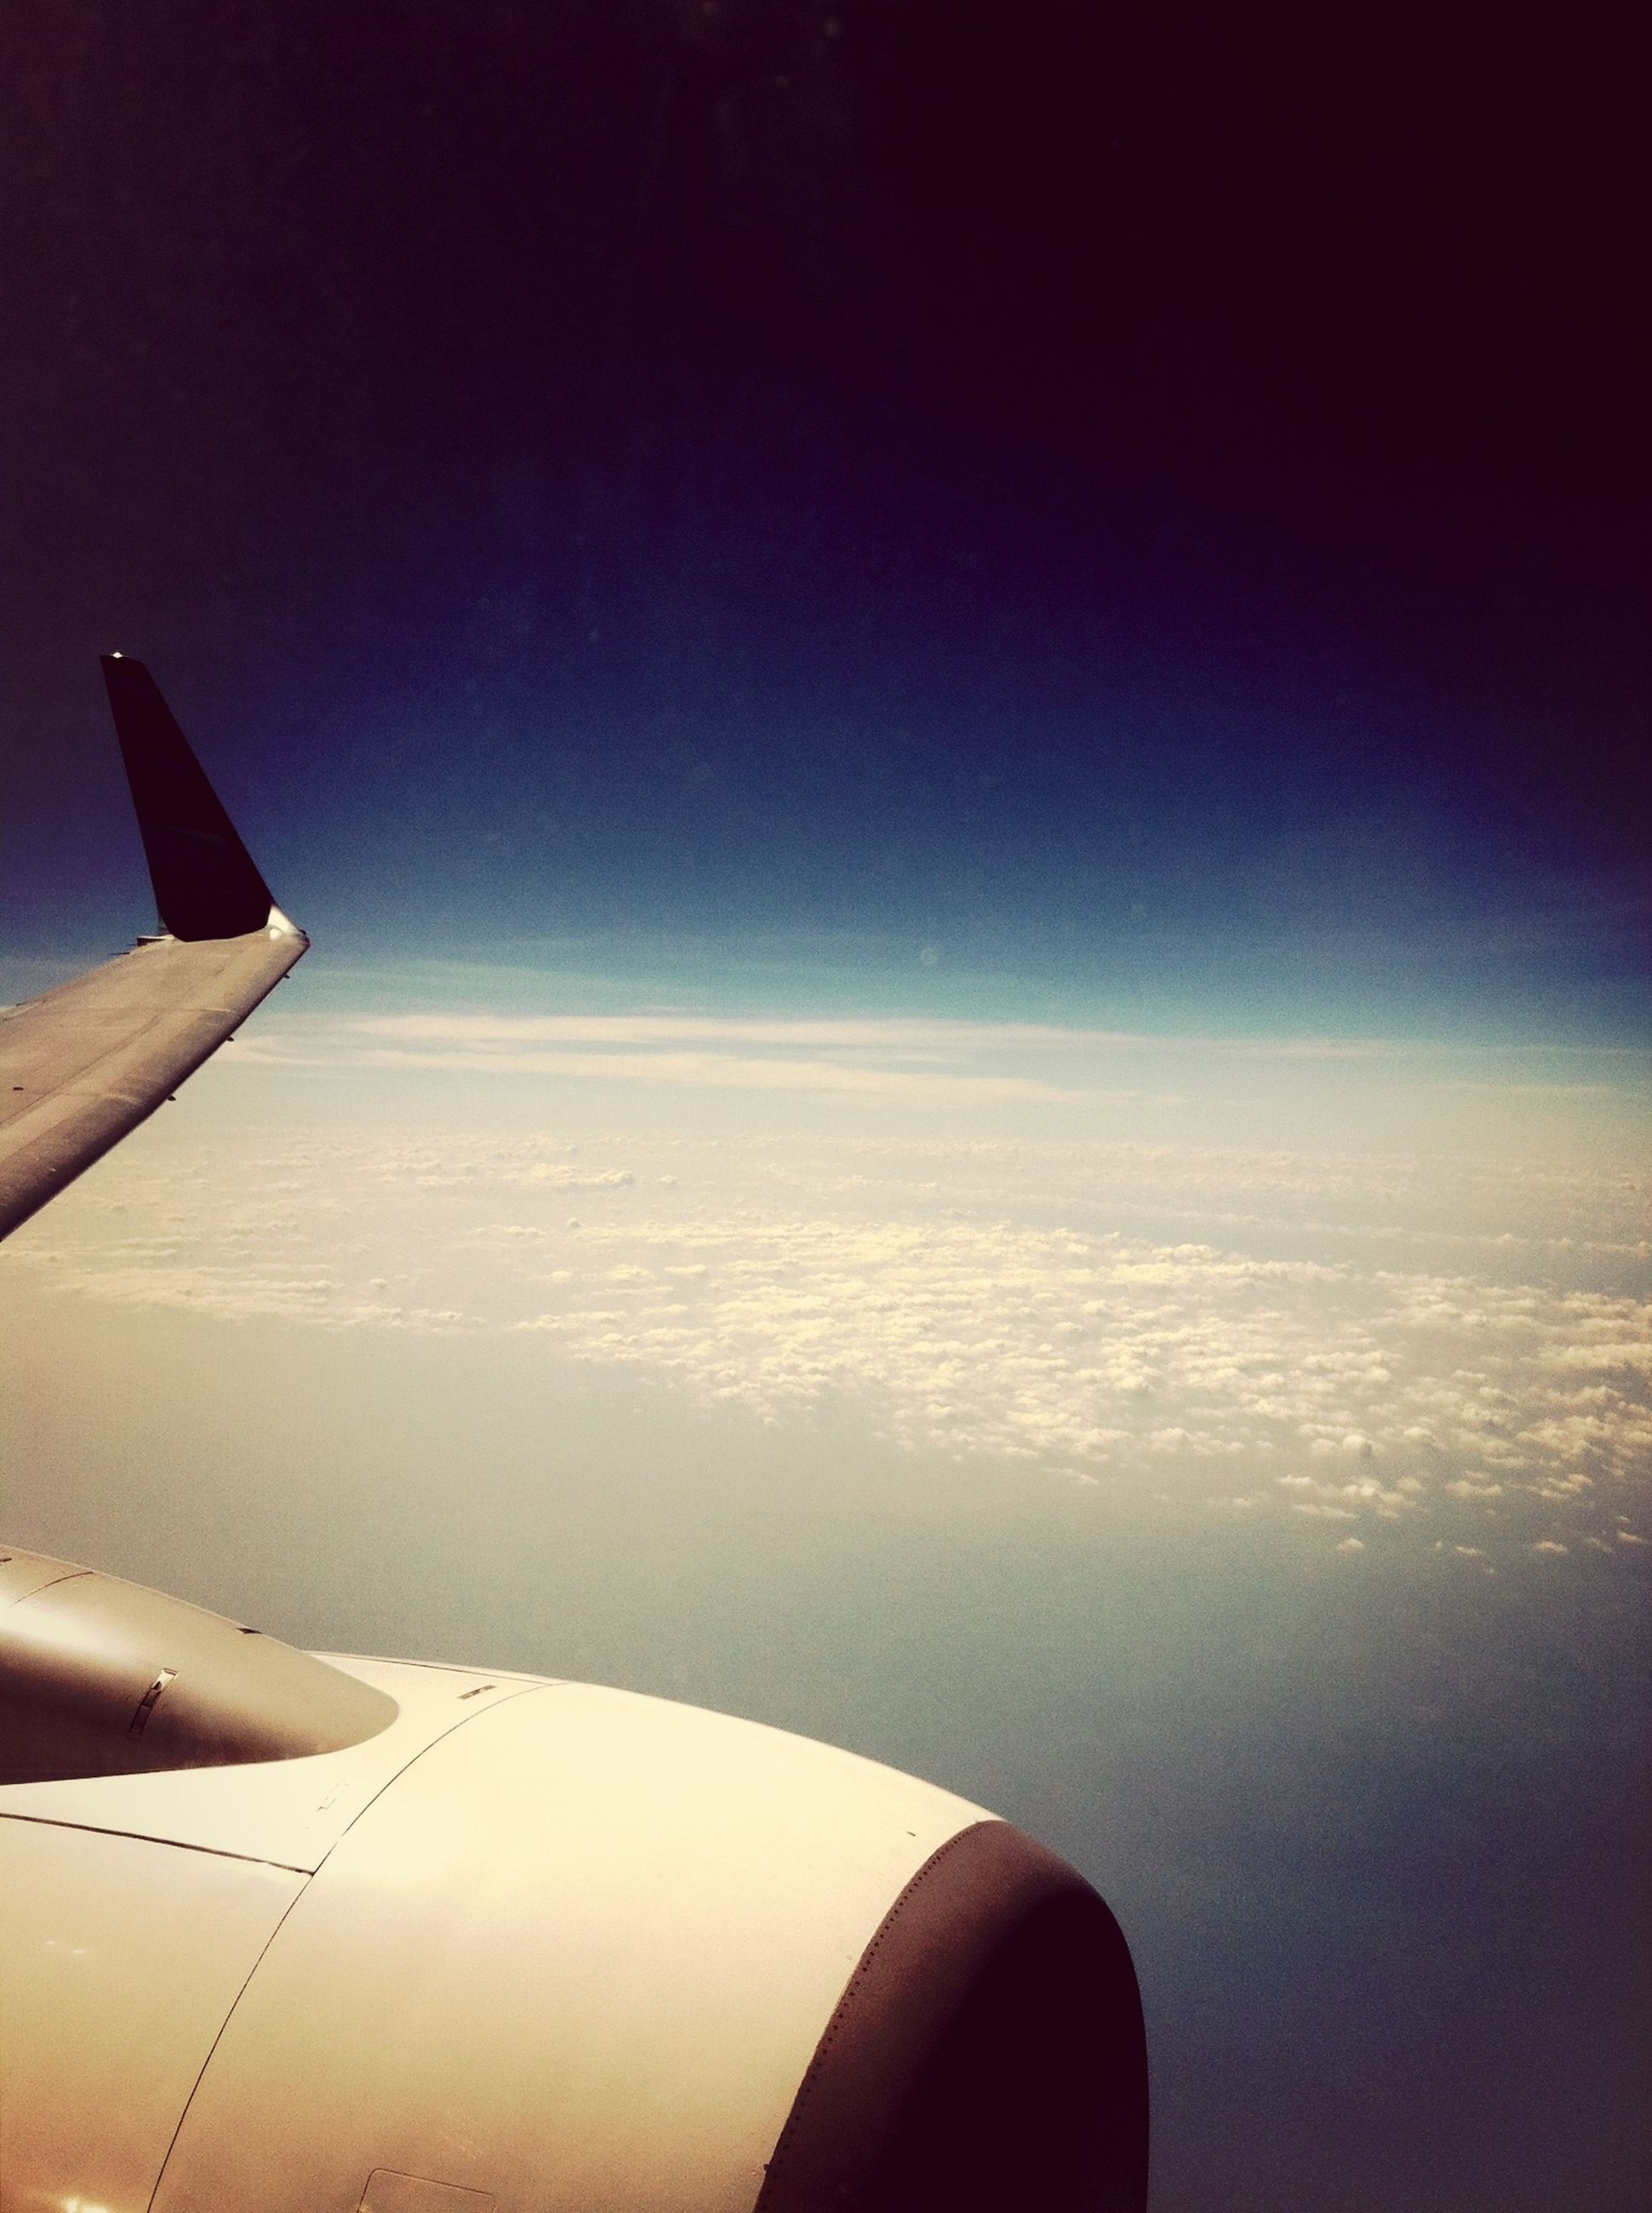 airplane, air vehicle, aircraft wing, flying, transportation, mode of transport, part of, cropped, sky, mid-air, aerial view, journey, travel, airplane wing, scenics, public transportation, landscape, on the move, aeroplane, beauty in nature